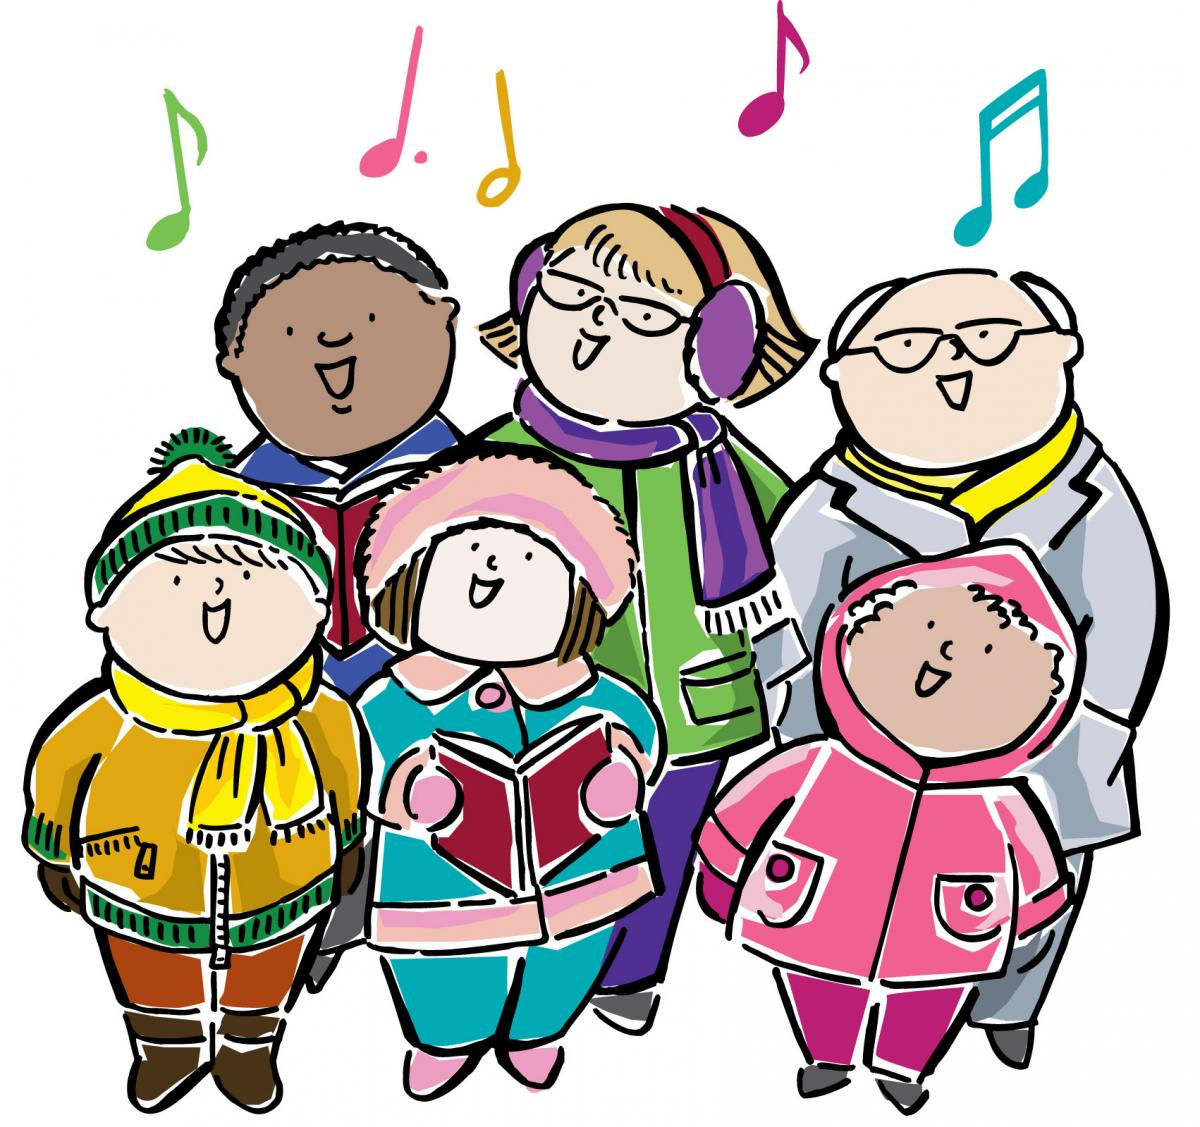 Caroling clipart. Christmas unity of the